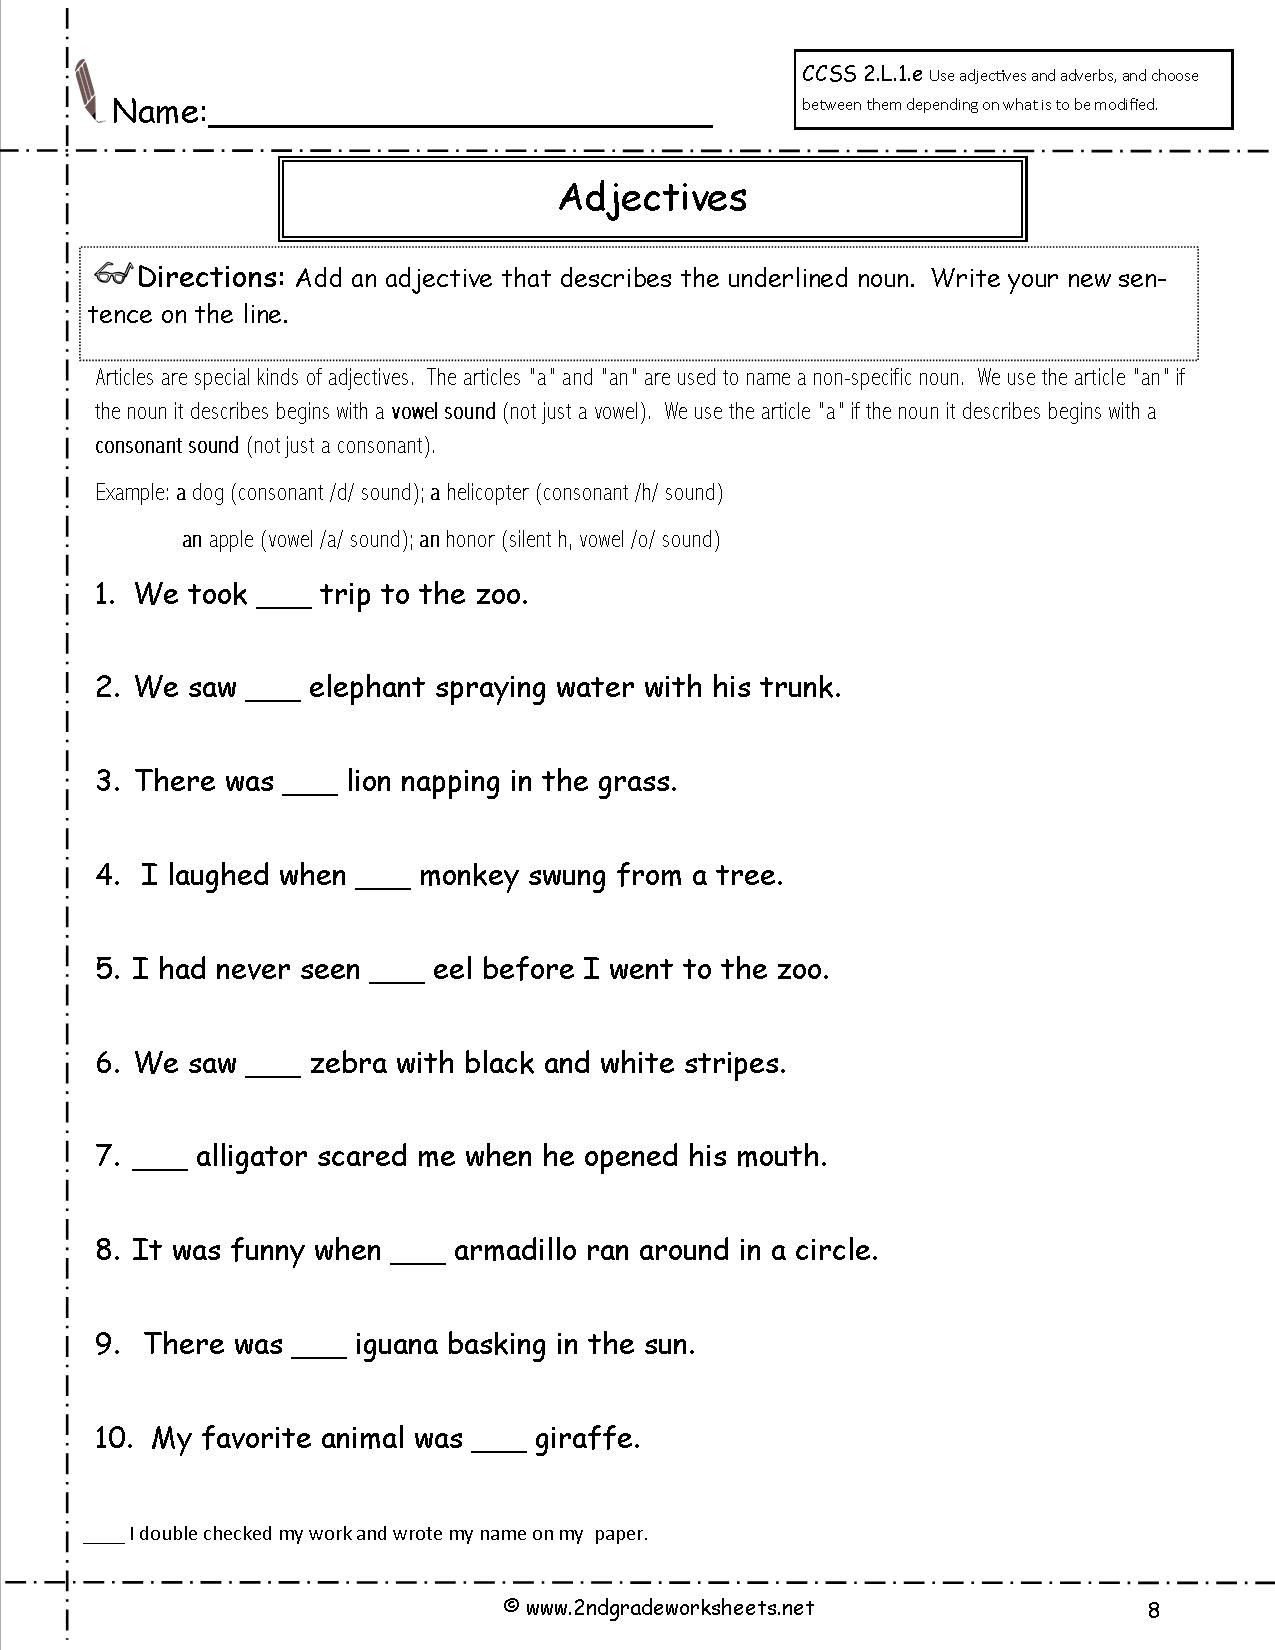 Adjective Worksheets 1st Grade 2ndgradeworksheets Net Free Worksheets and Printables for